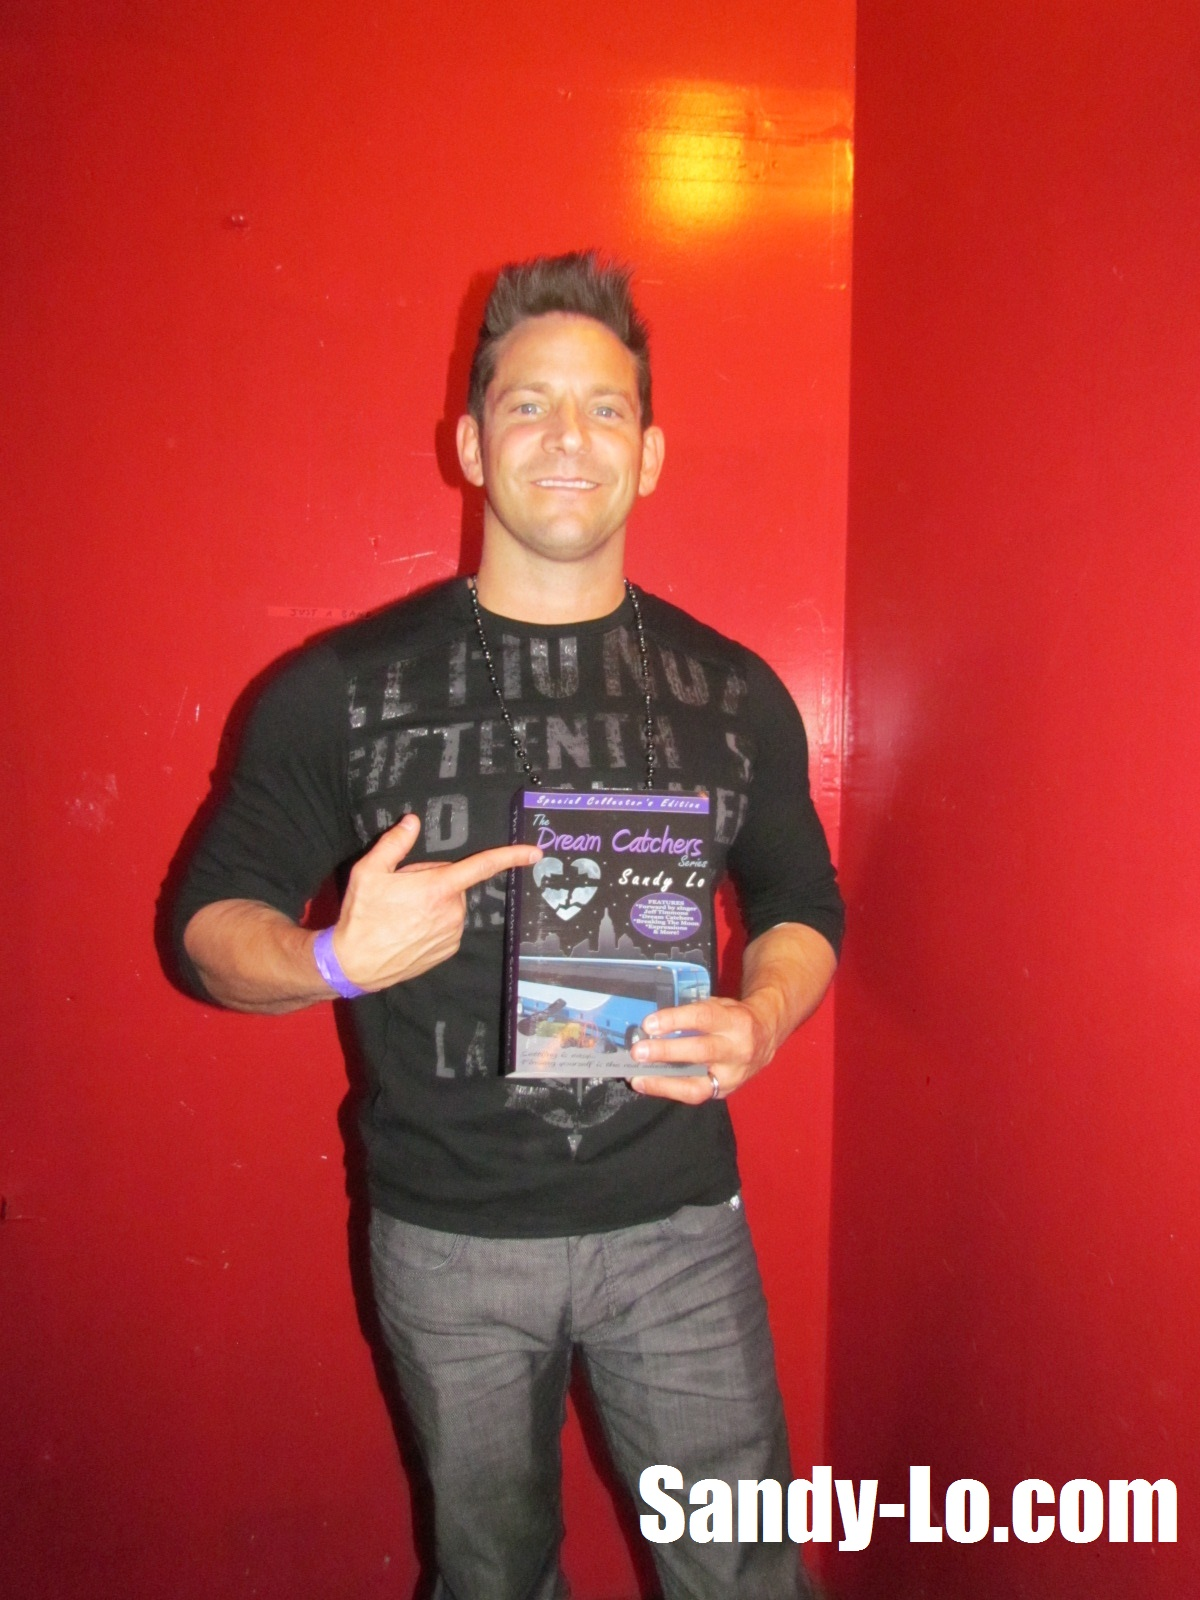 "Jeff Timmons of 98 Degrees with his personal copy of the ""Dream Catchers"" Series collector's edition, which I autographed of course!"